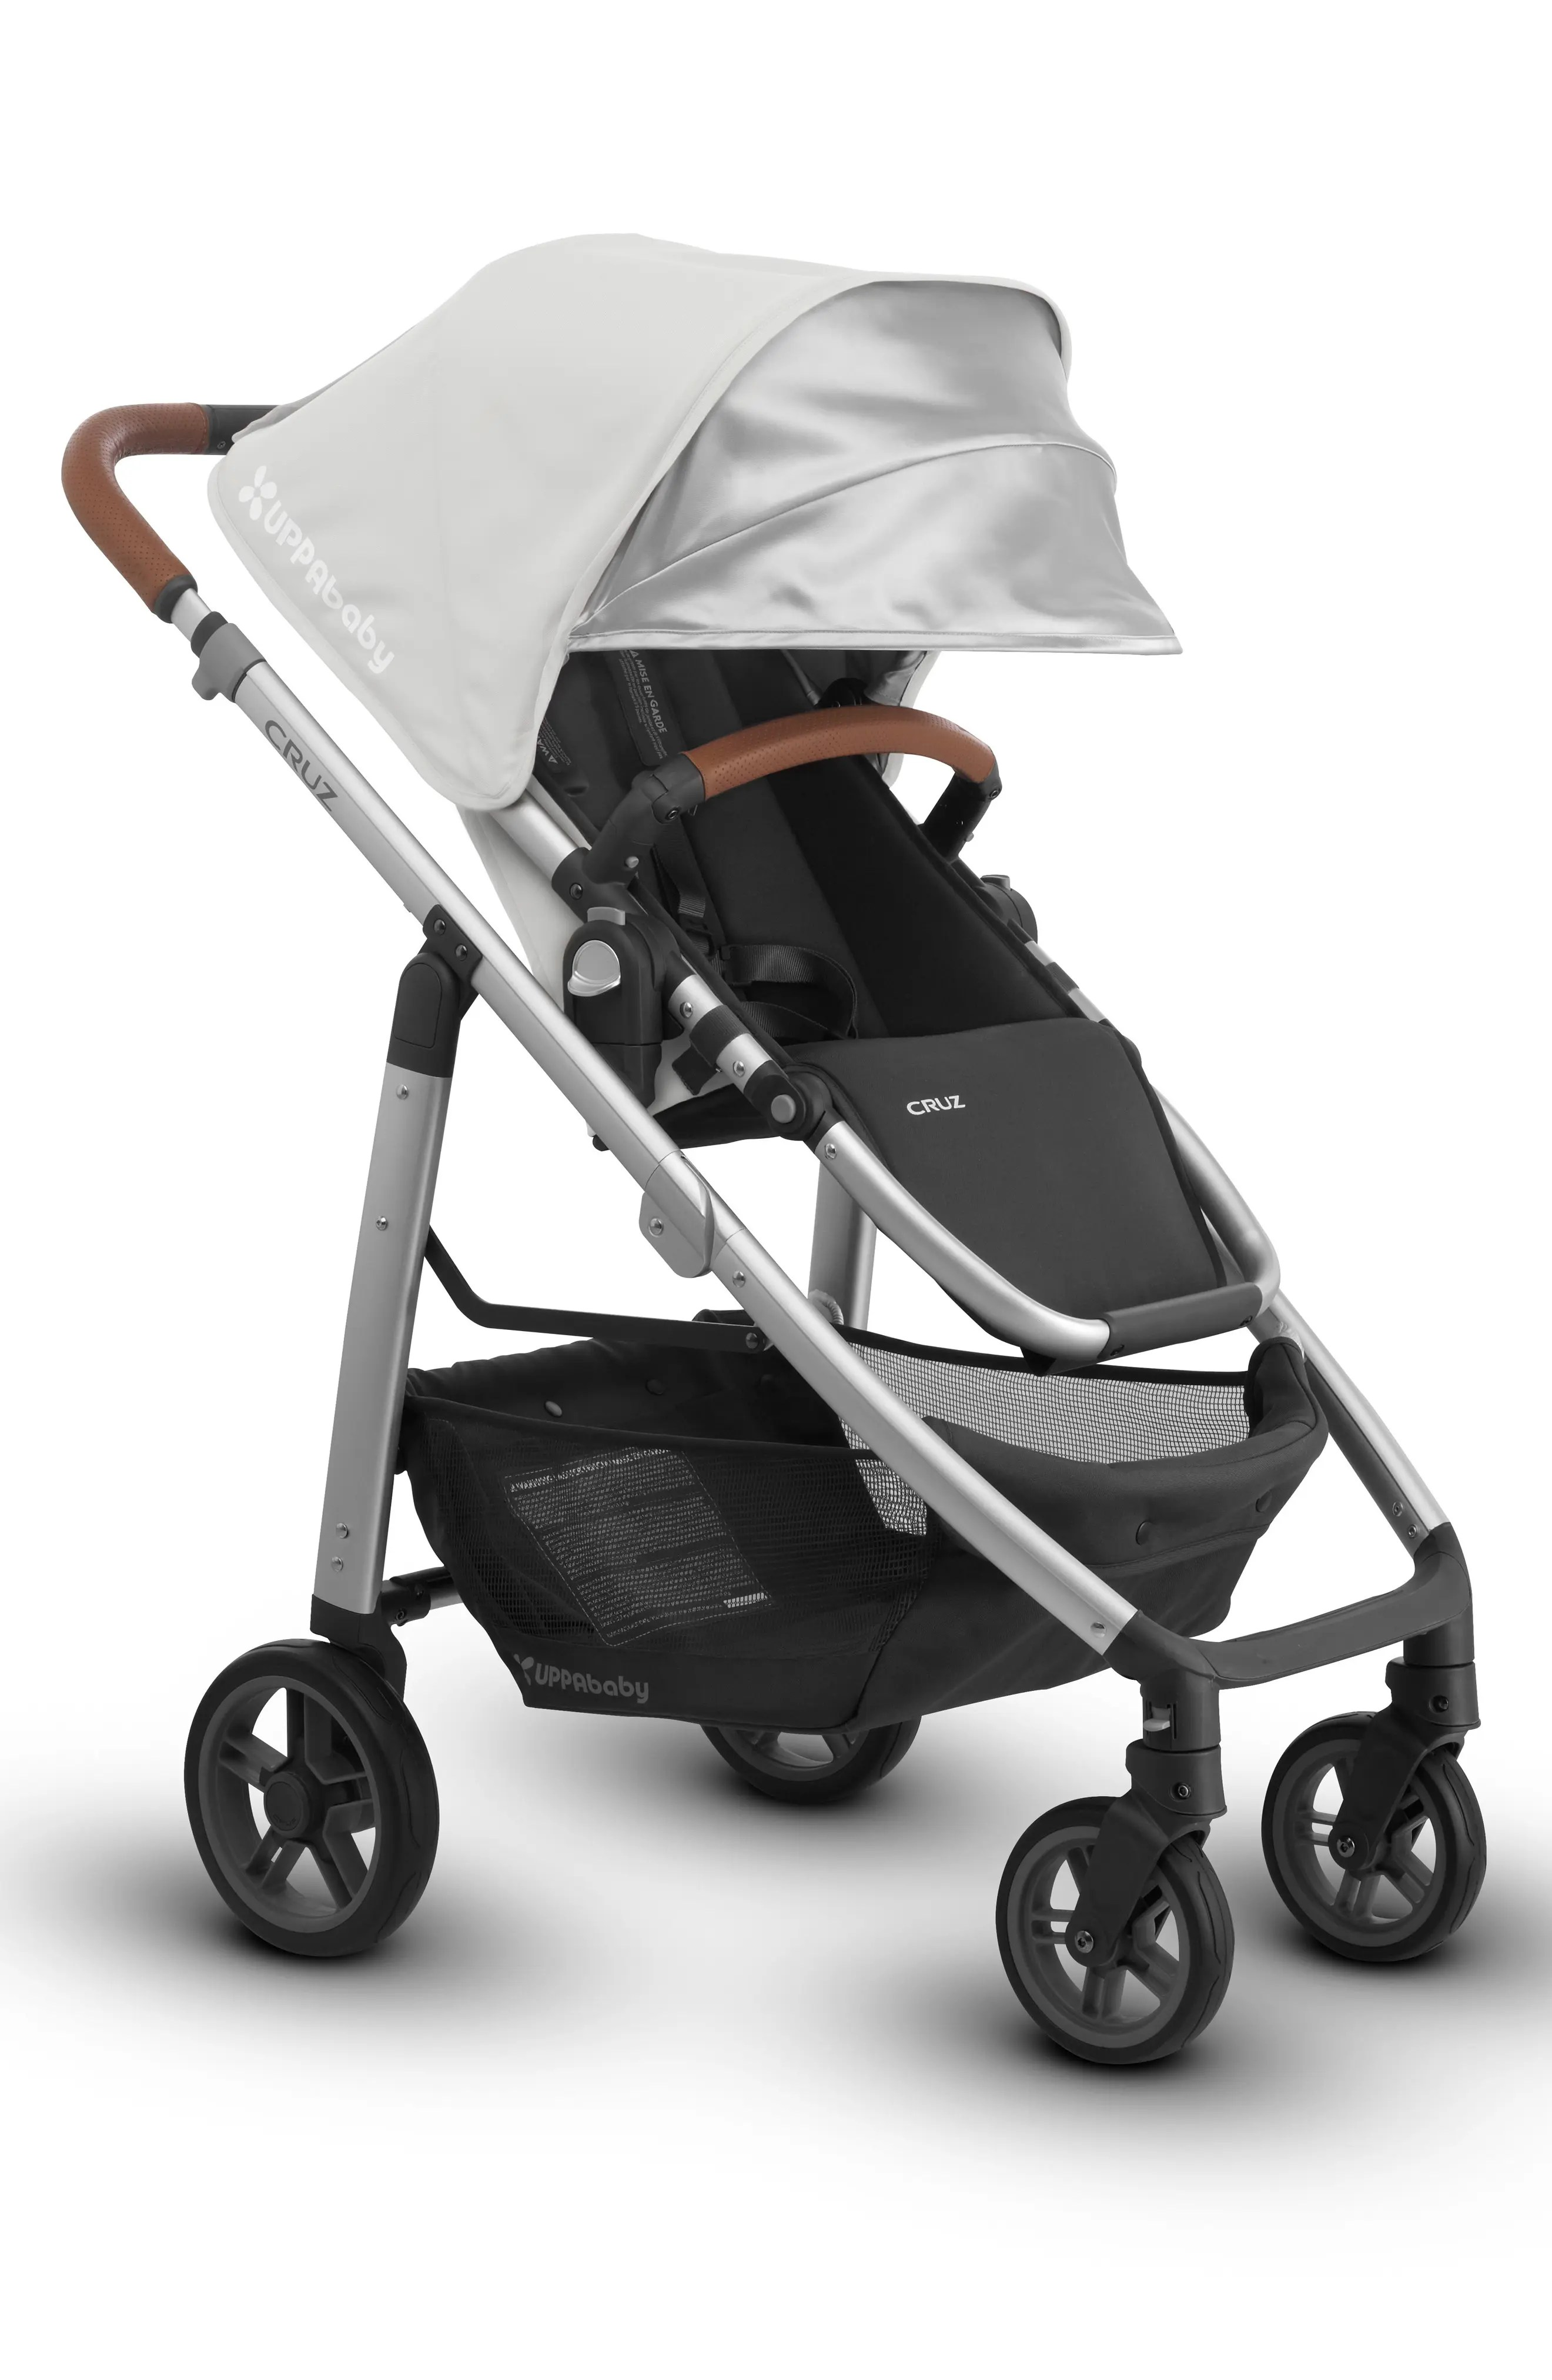 Egg Pram Parasol John Lewis Best Prams Pushchairs Strollers Voted Top By Parents 2019